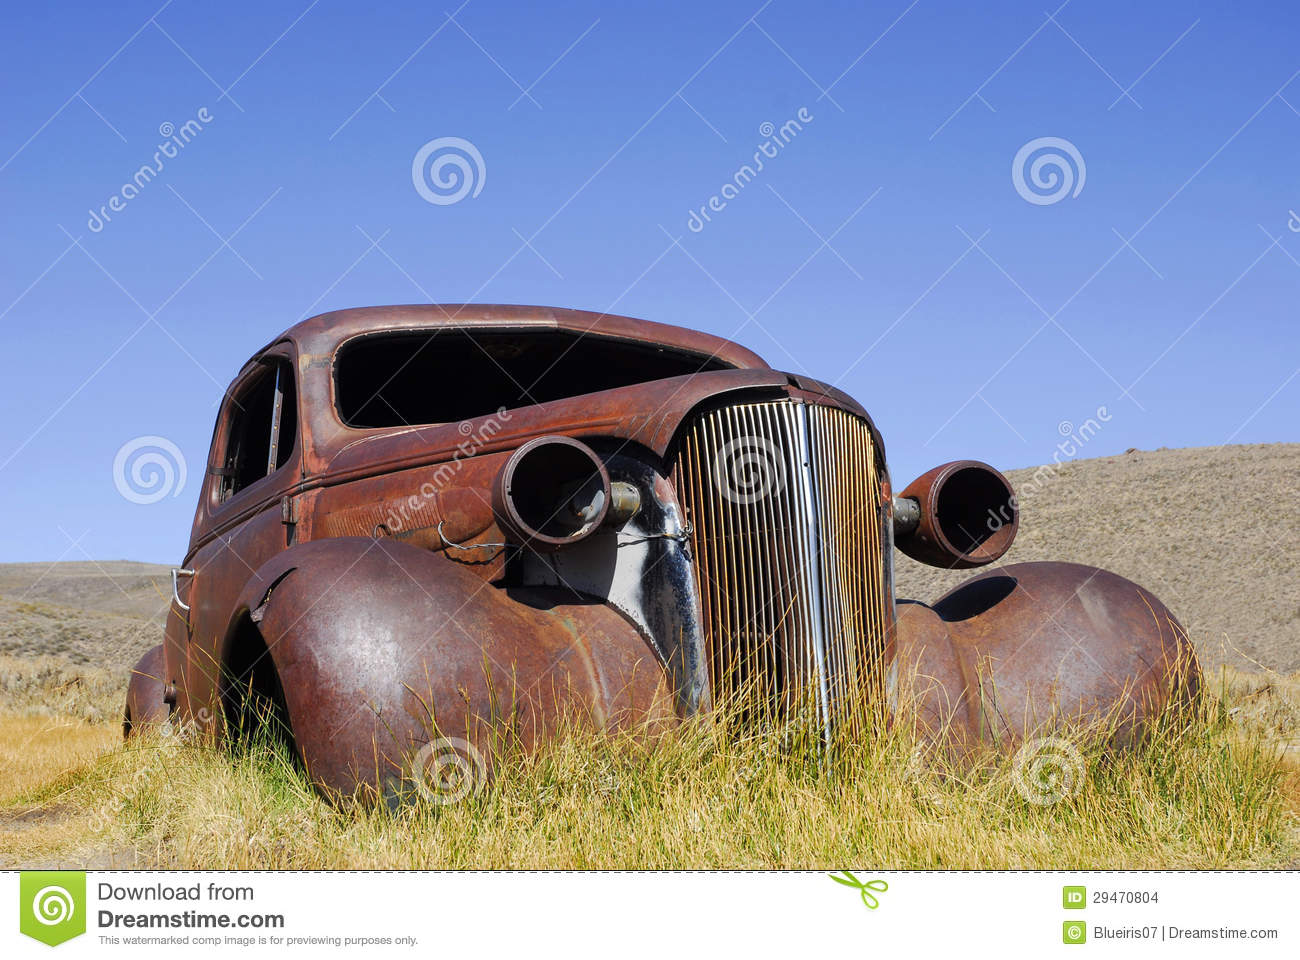 Abandoned Antique Car Stock Images - Image: 29470804